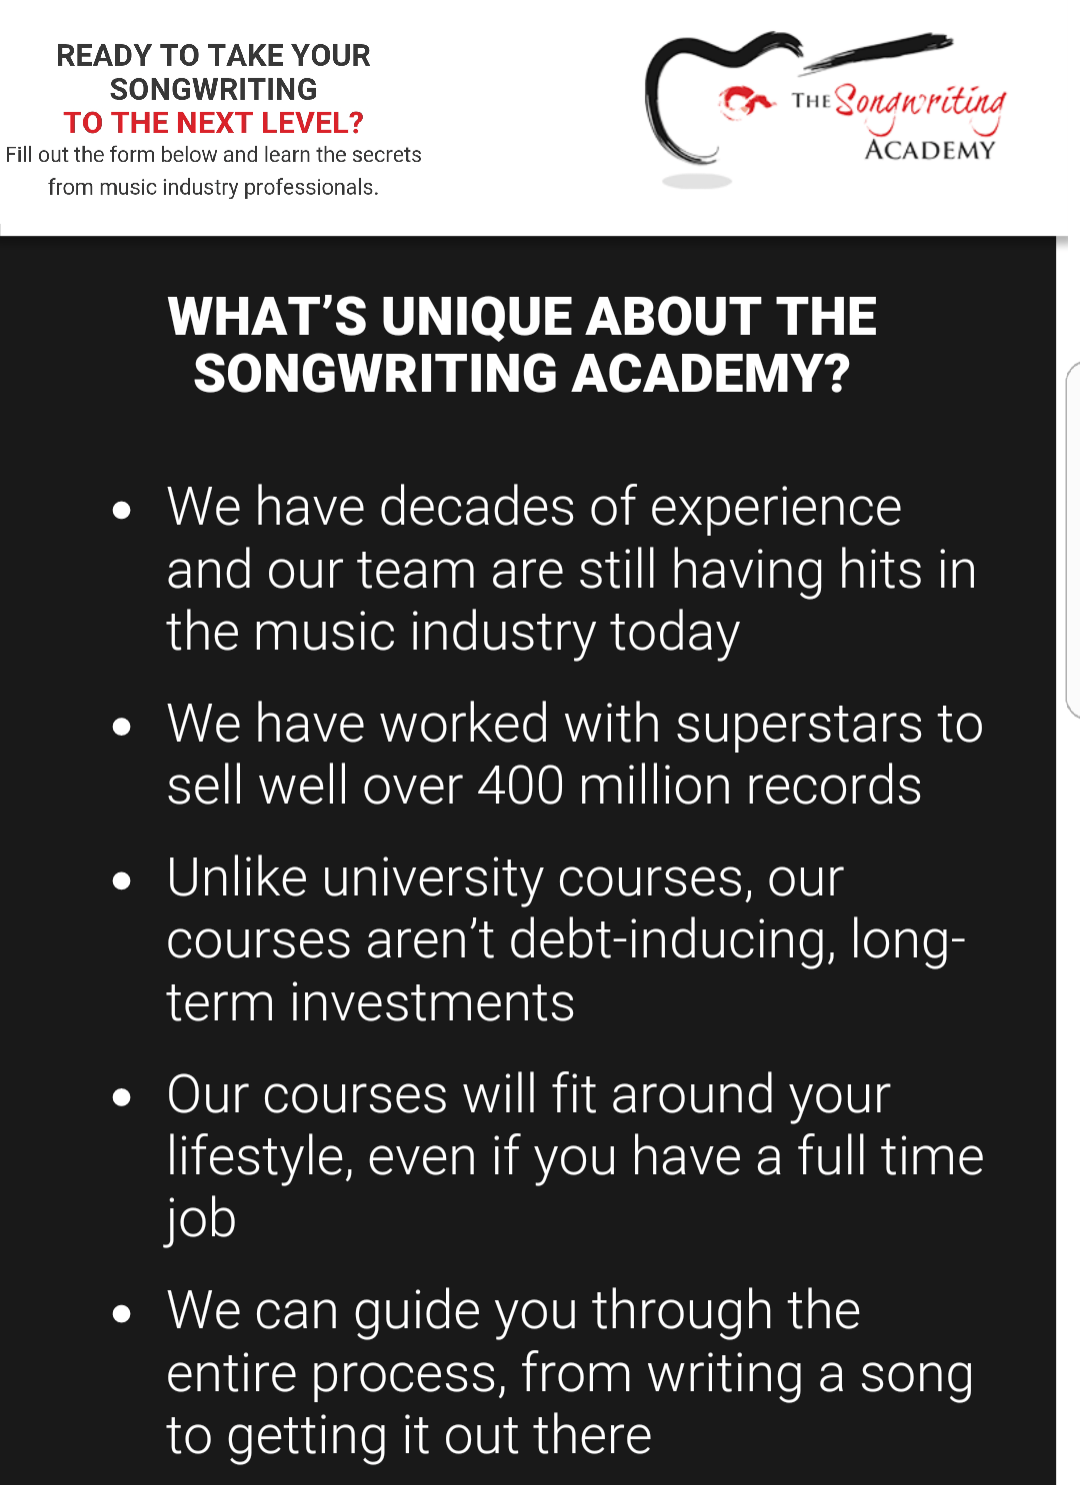 862f59b41ee92fb187b381ead39b0d59 - How To Get In The Music Industry As A Songwriter